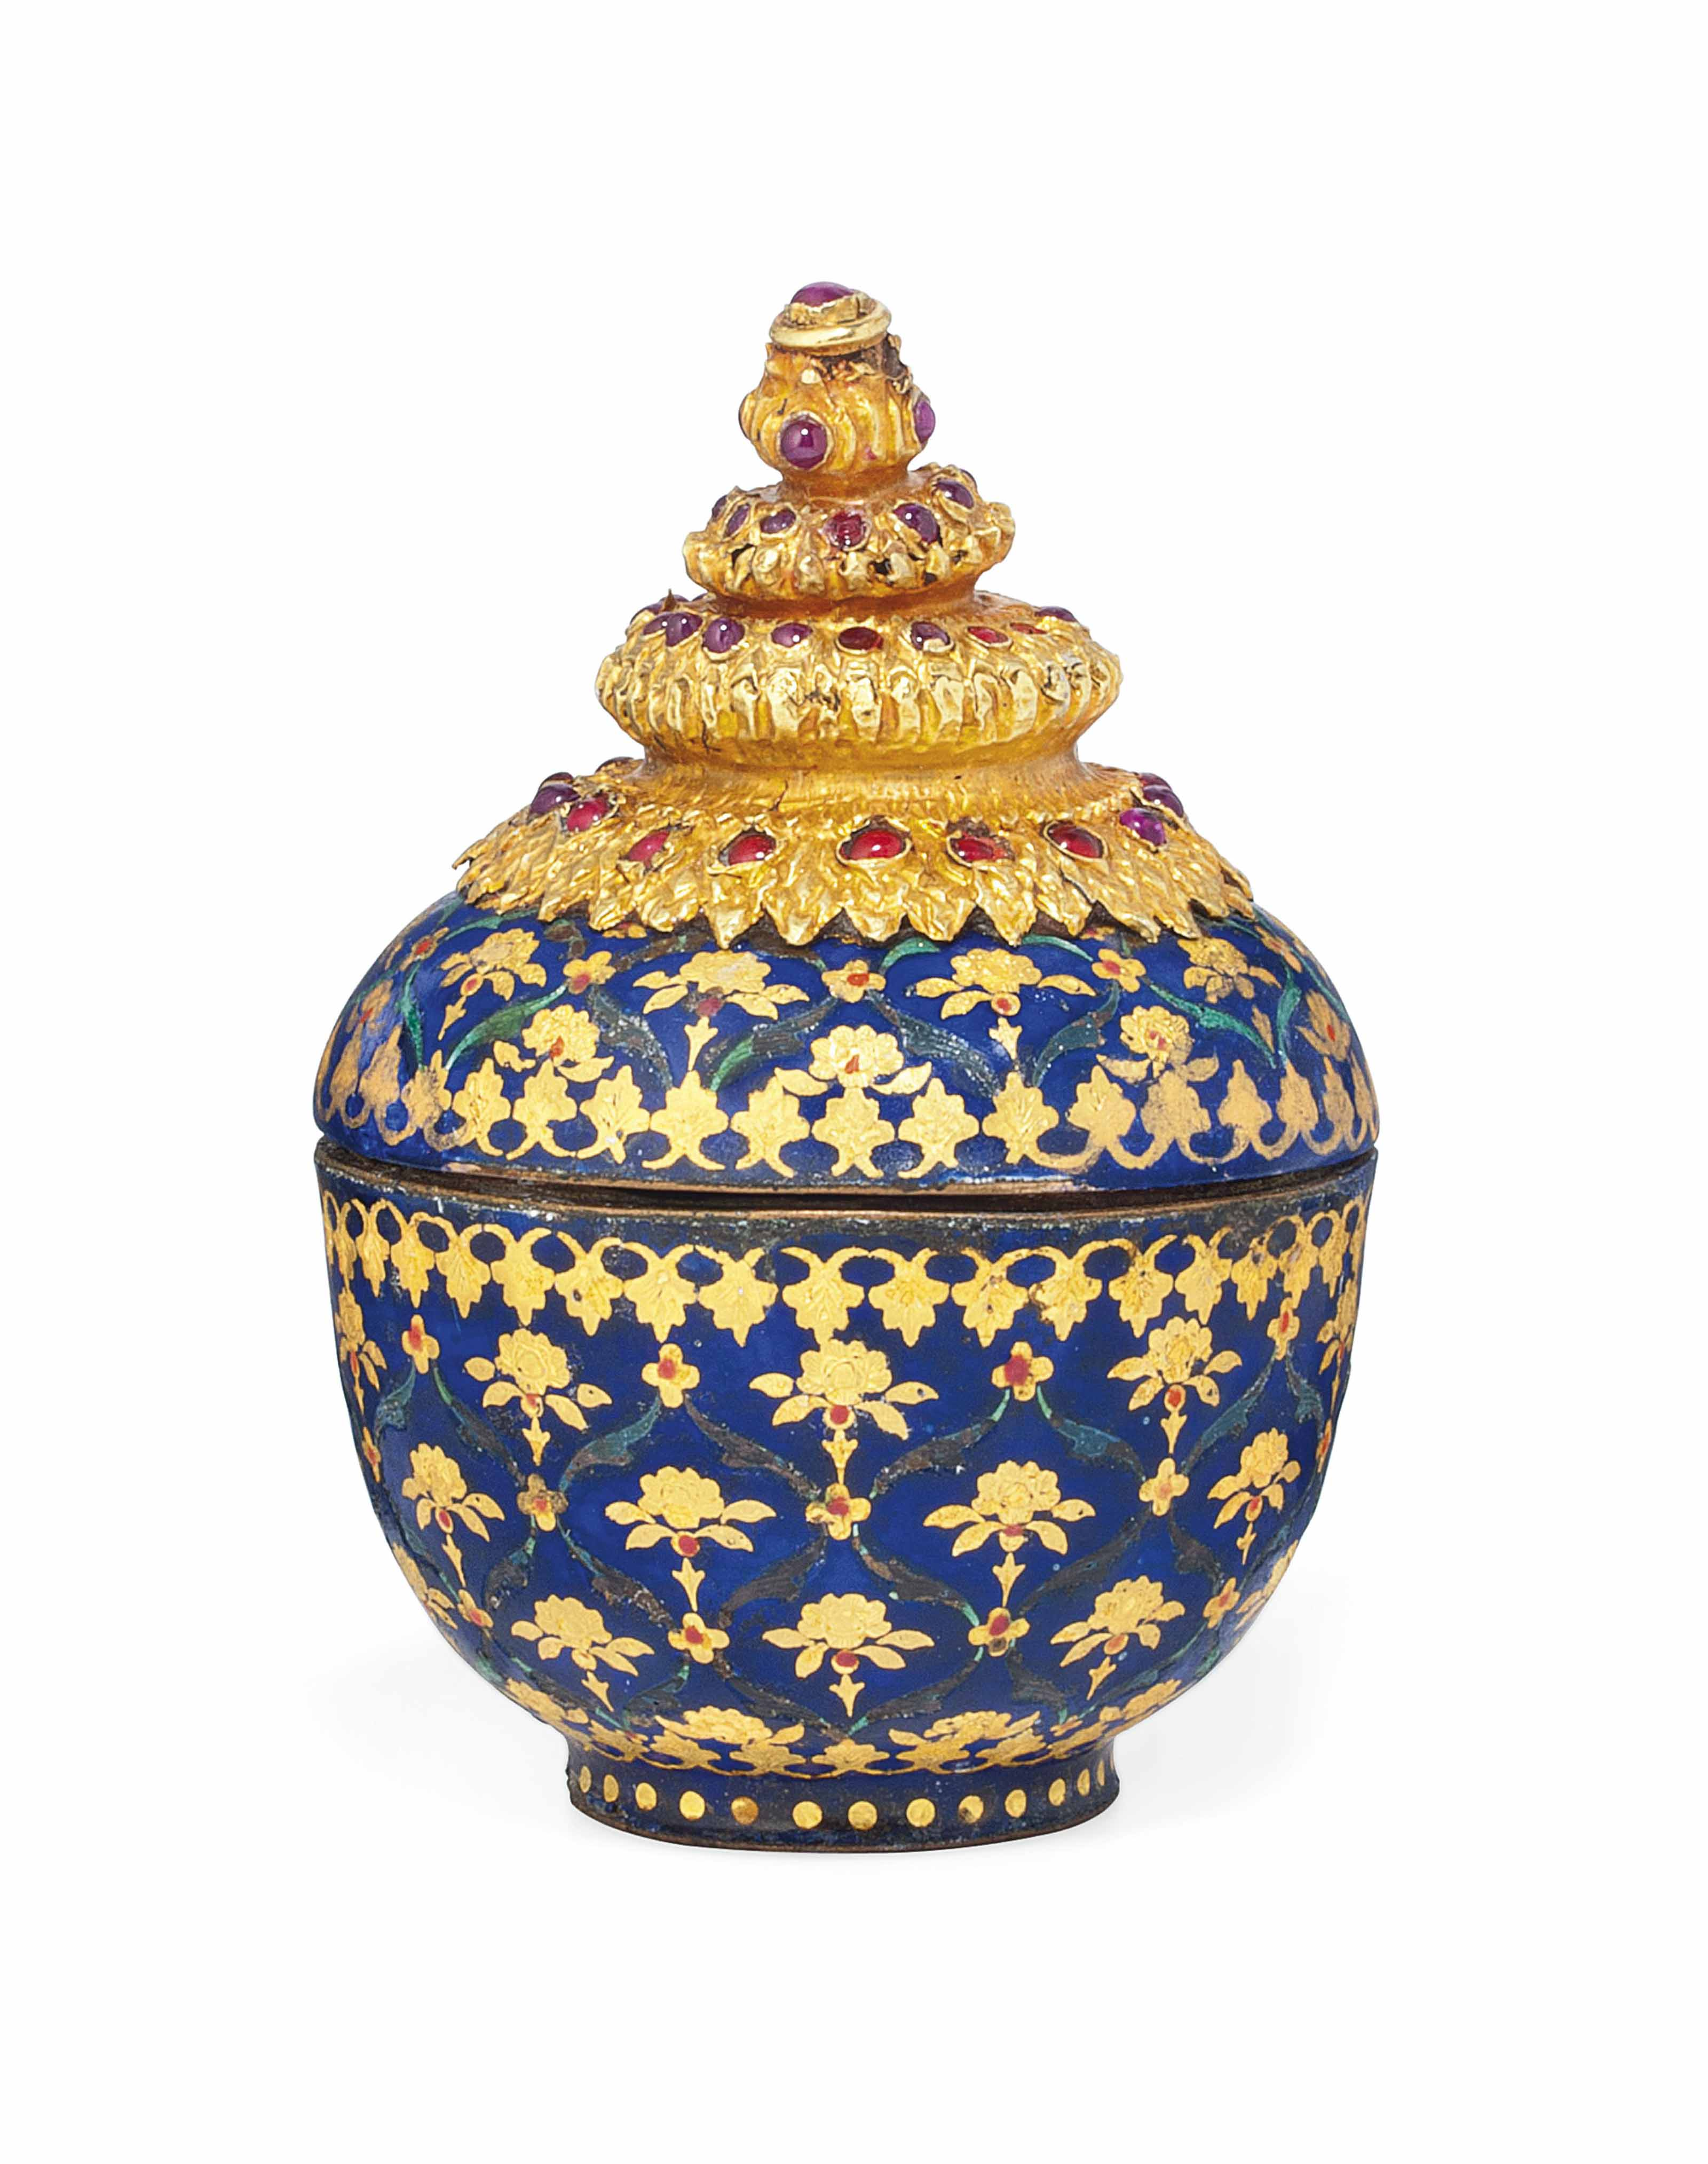 A GEM-SET, GOLD AND ENAMELLED COVERED BOX